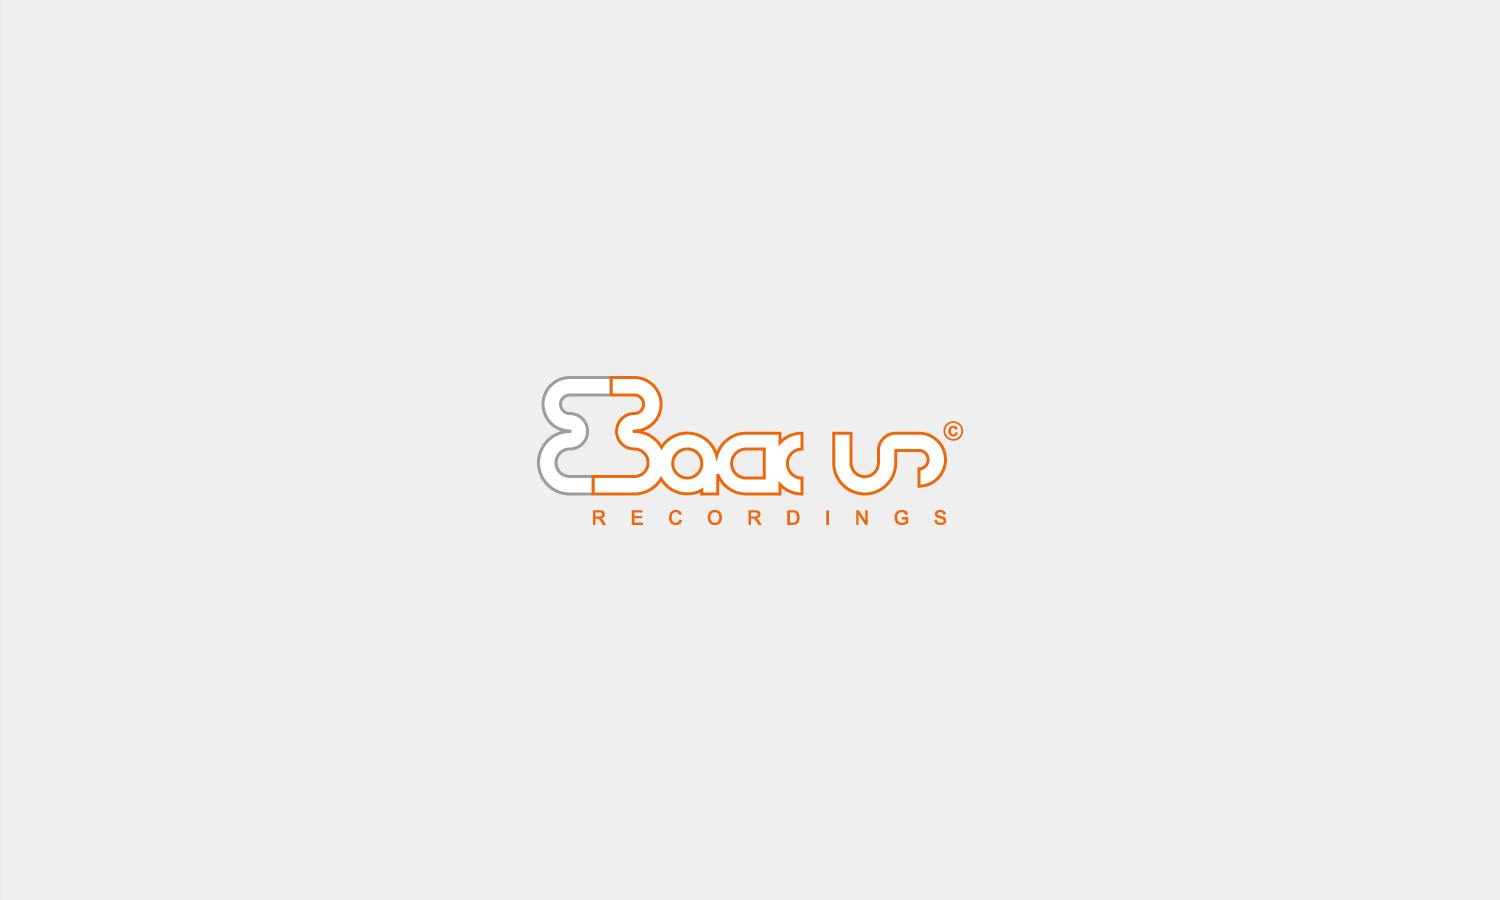 BackUp Recordings